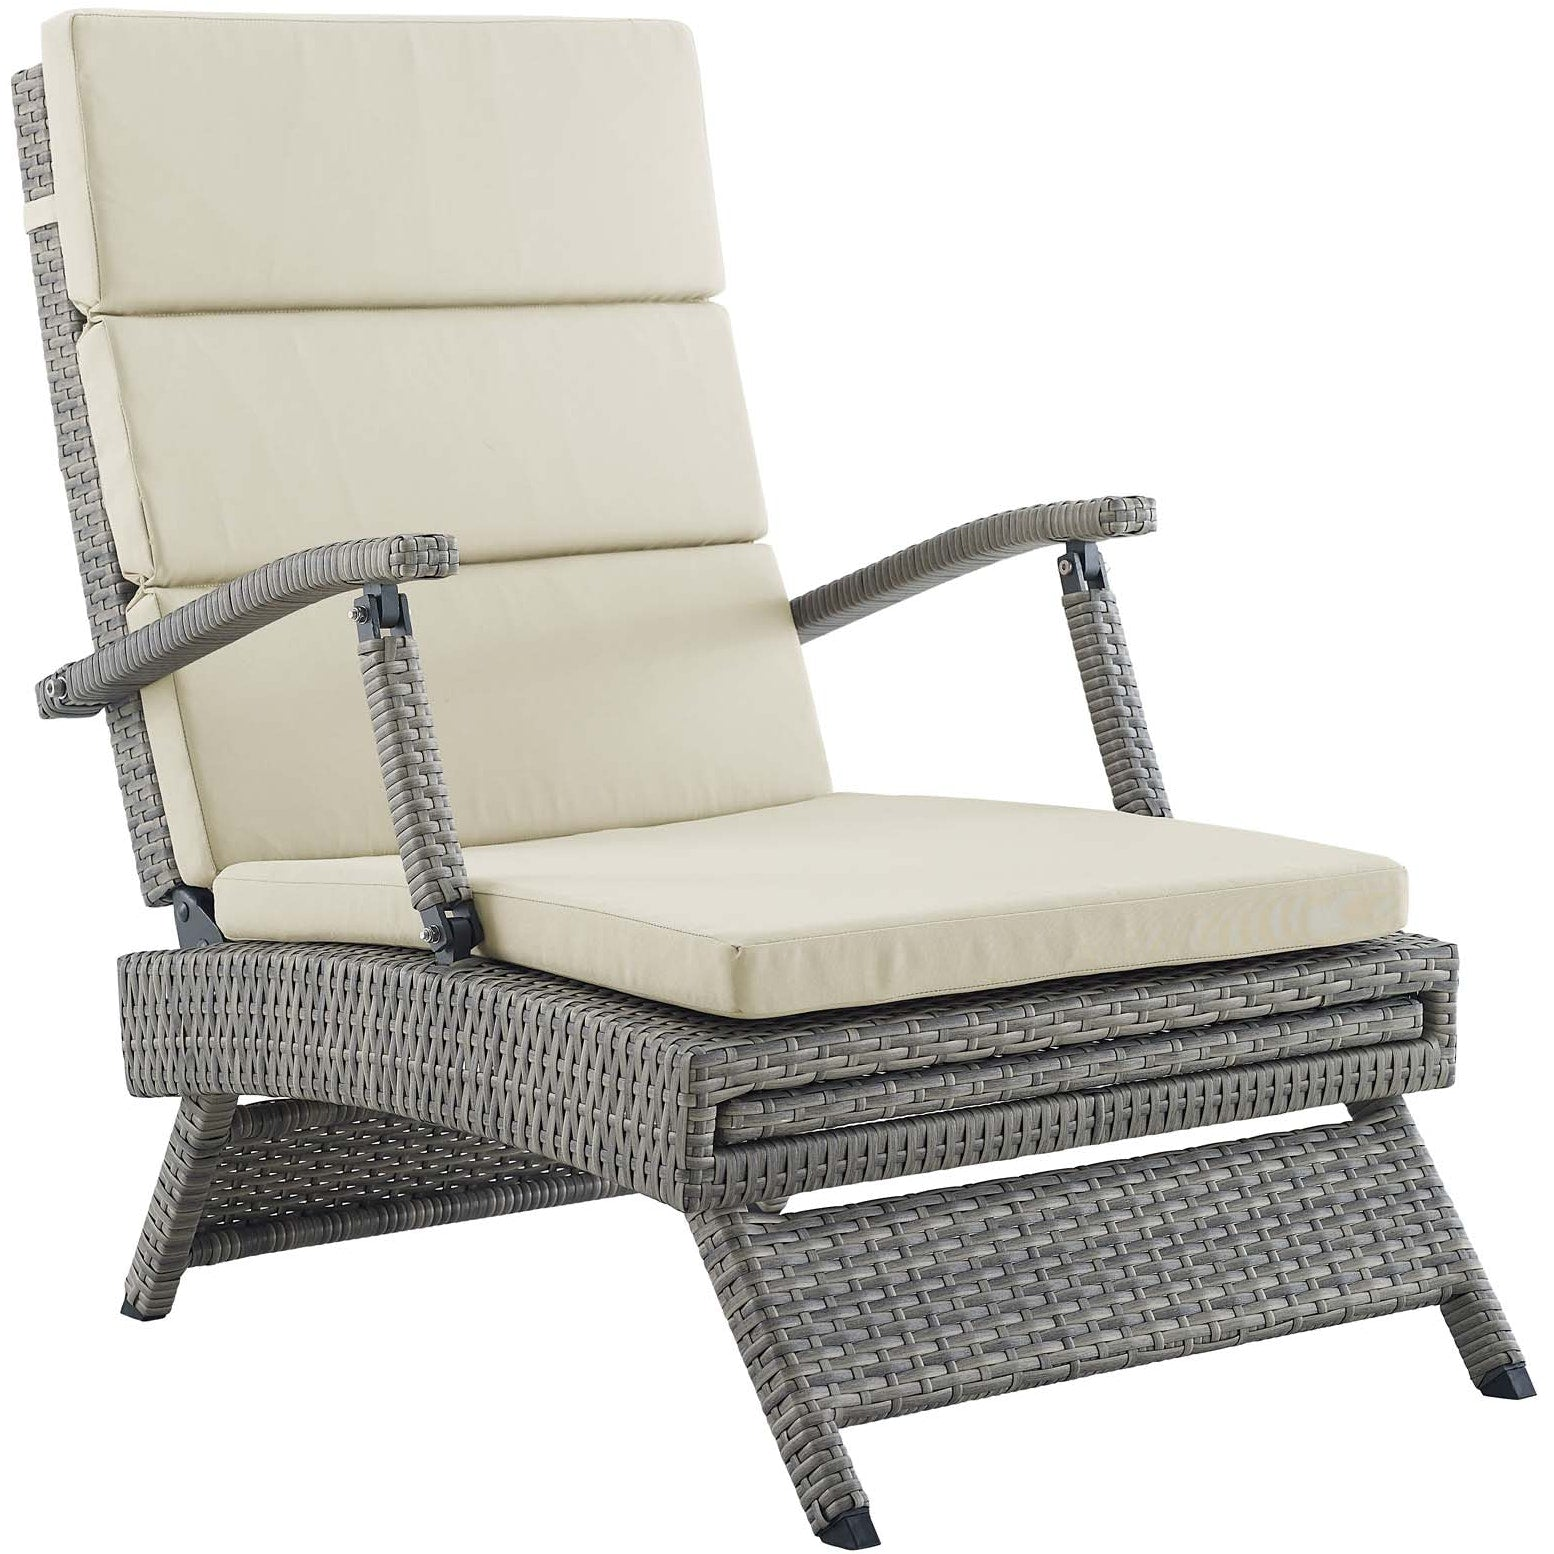 Envisage Chaise Outdoor Patio Wicker Rattan Lounge Chair - Light Gray Beige